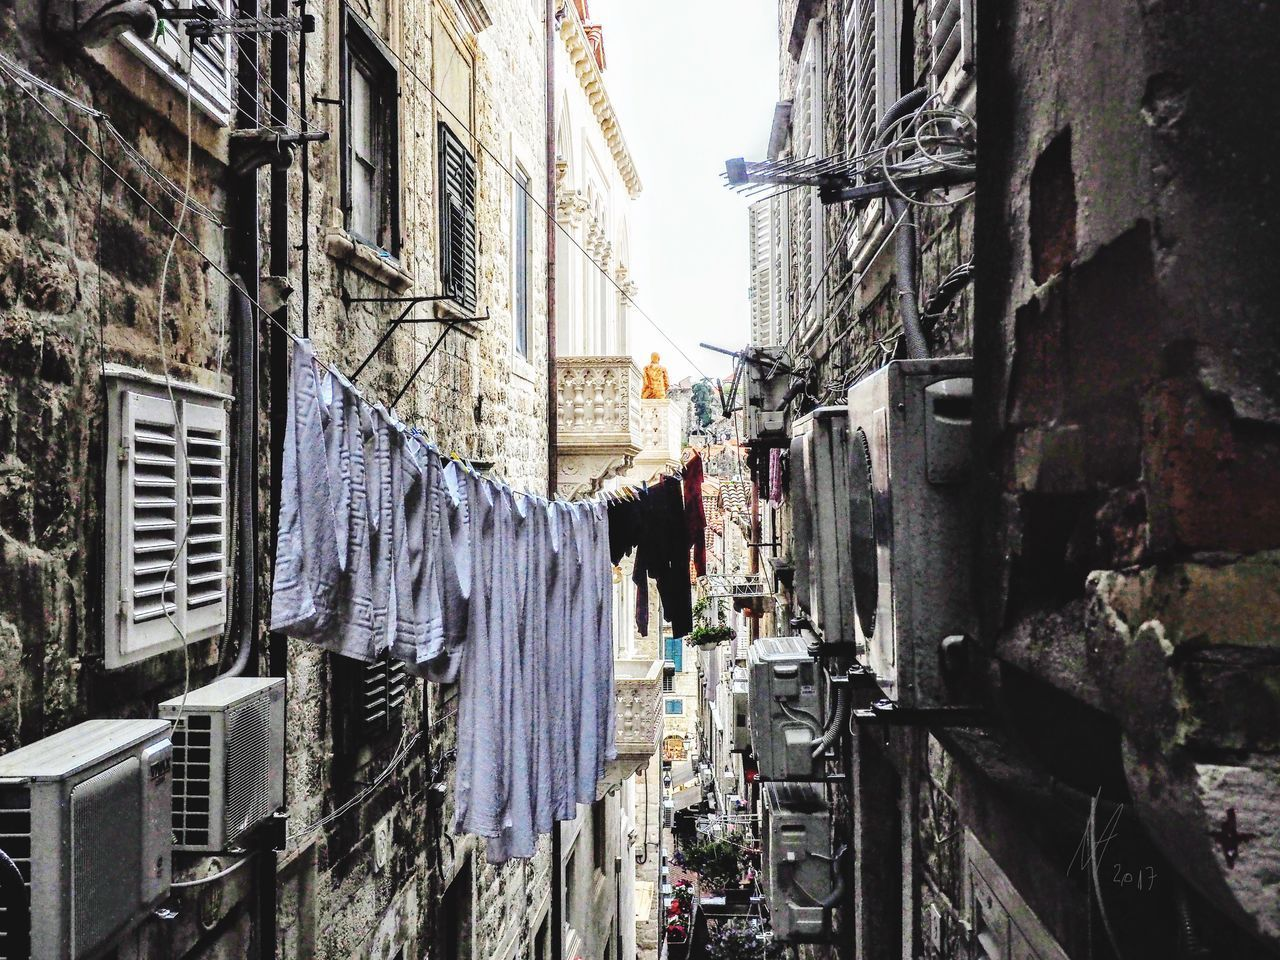 Building Exterior Architecture Drying Clothesline Hanging Clothing Built Structure Laundry Residential Building Alley Cloth Outdoors Textile Day City No People Sky